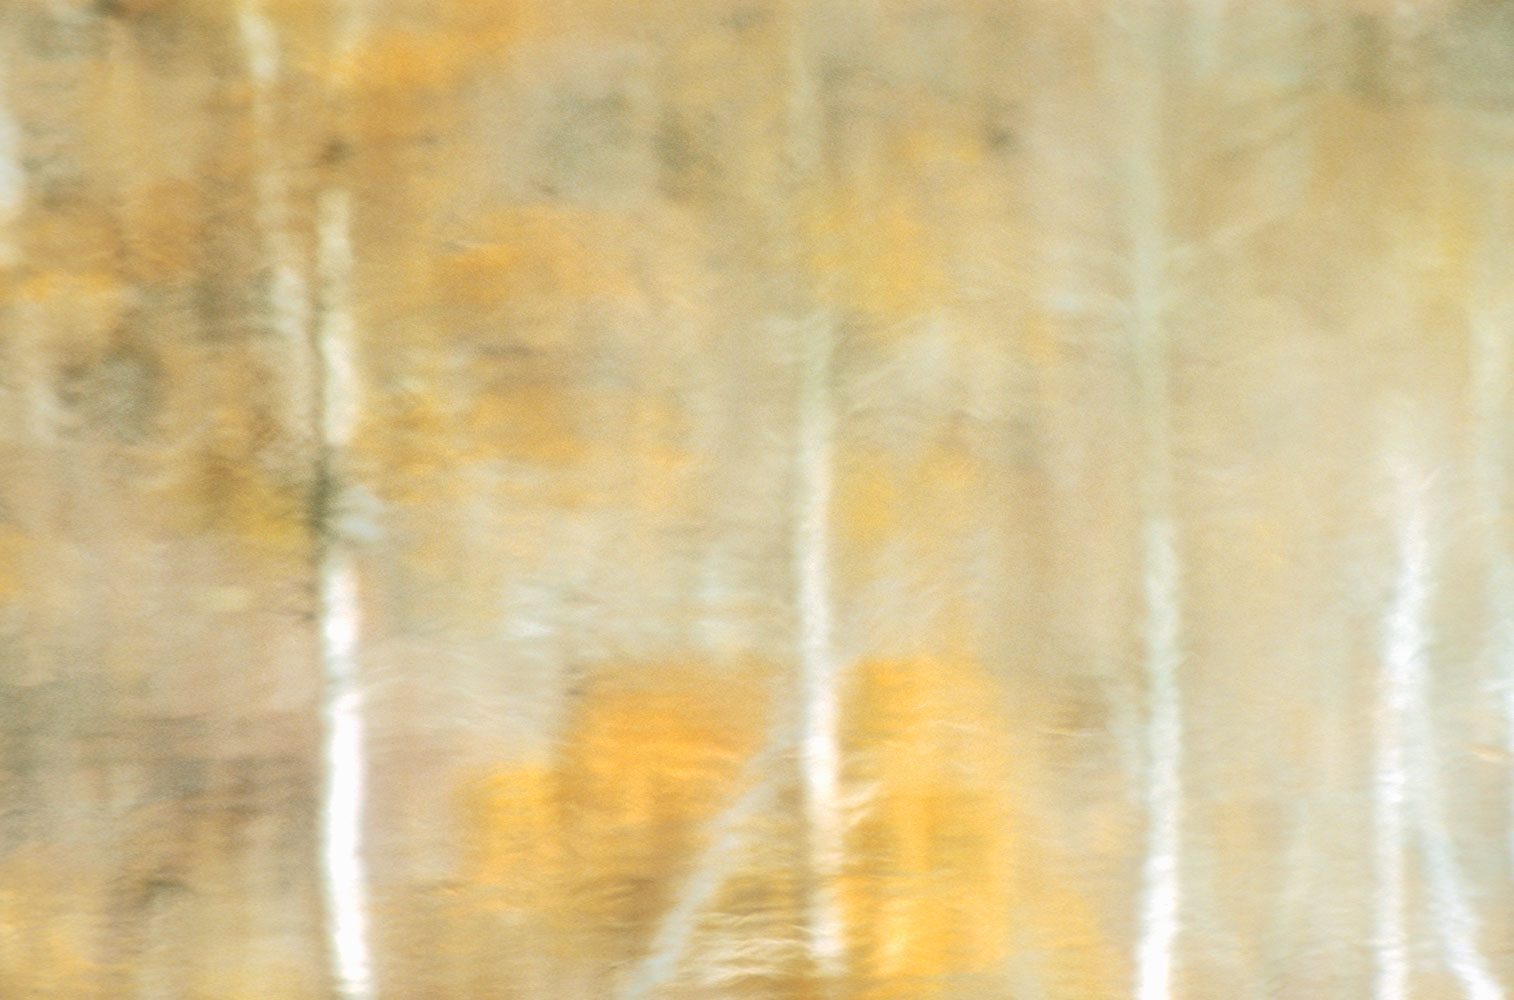 reflection   autumnal  gold-Aspens  soft  Lundy-Canyon   serene   meditation     impressionist